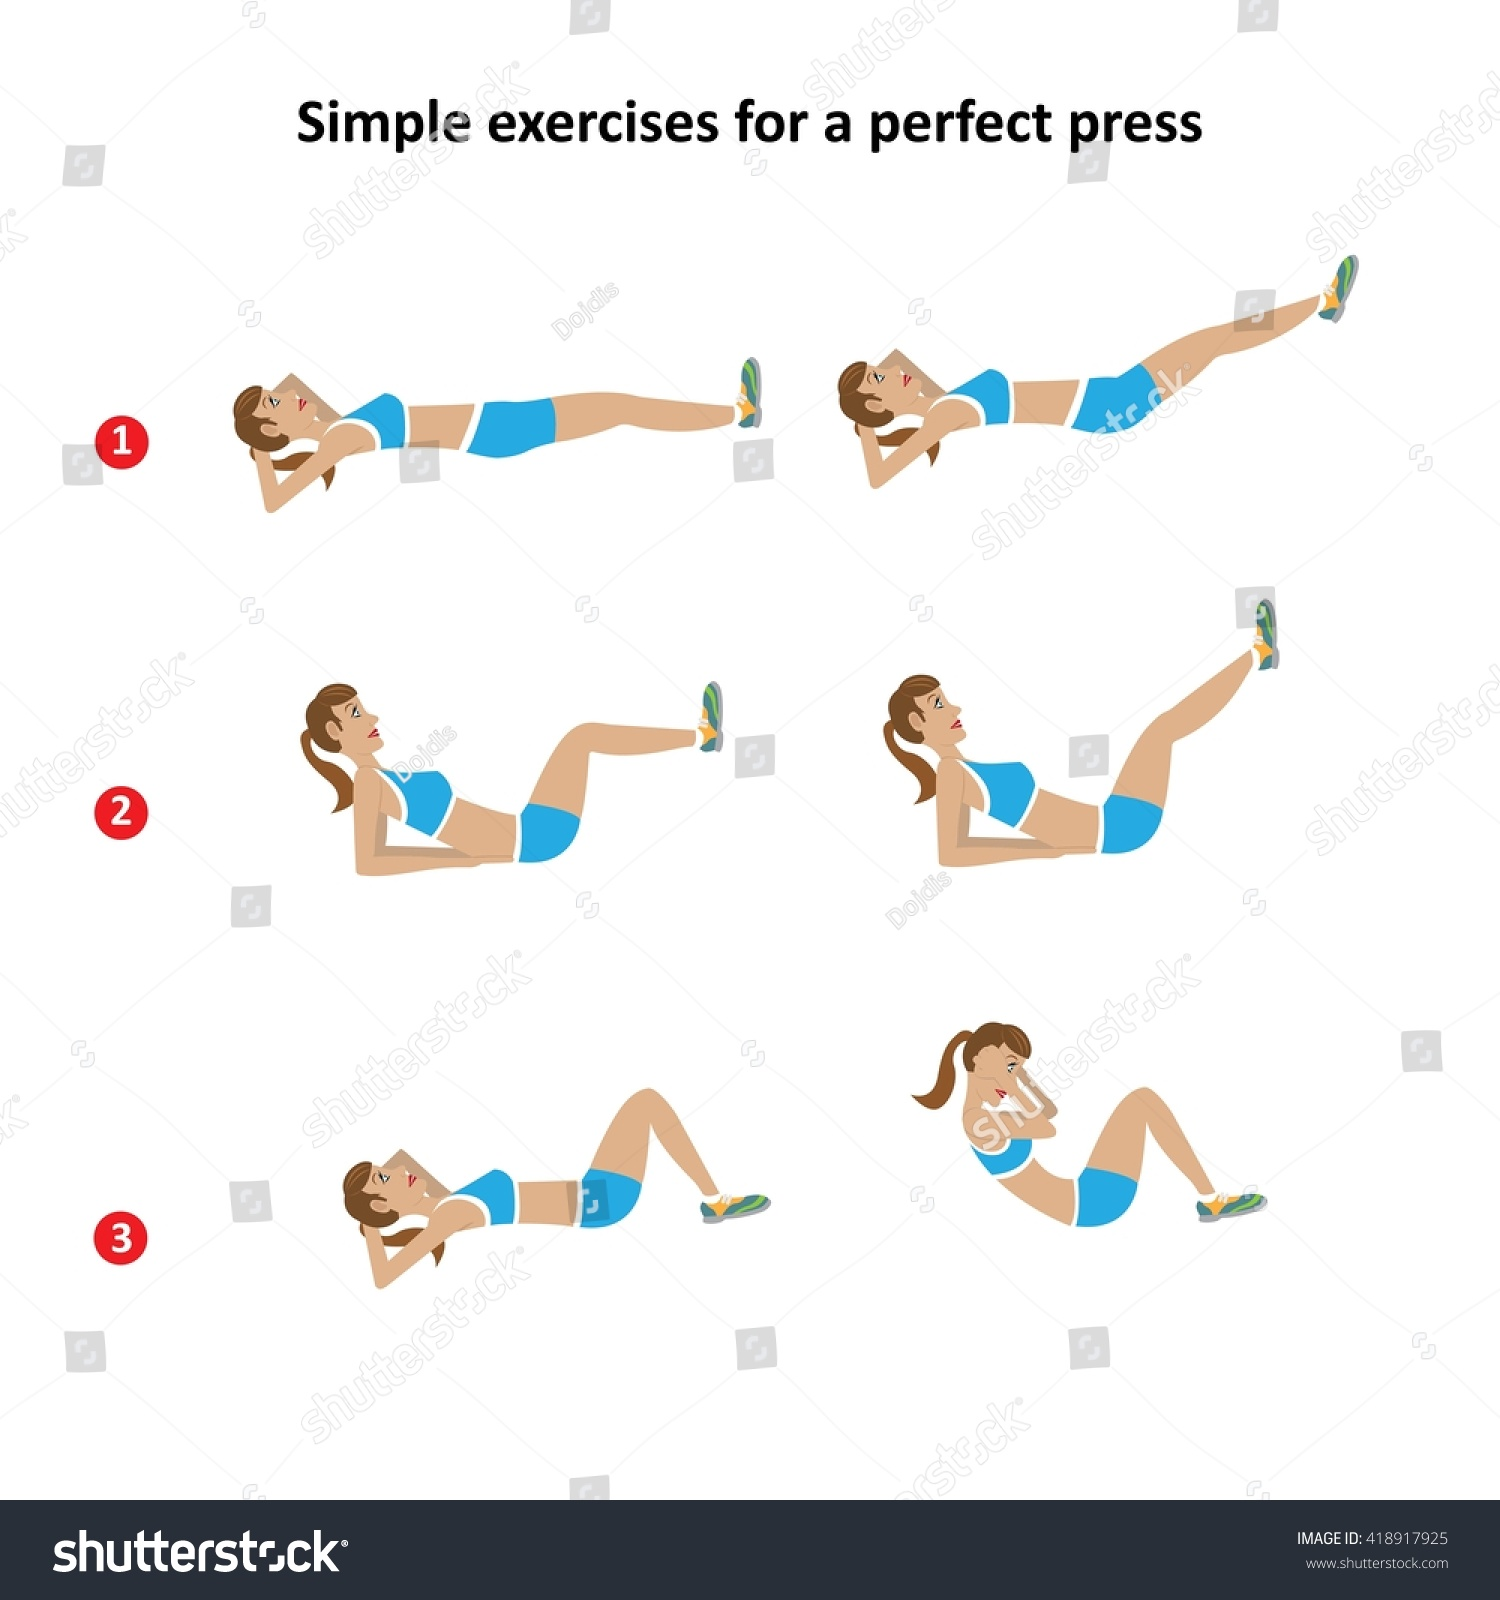 Exercise for flat stomach for ladies